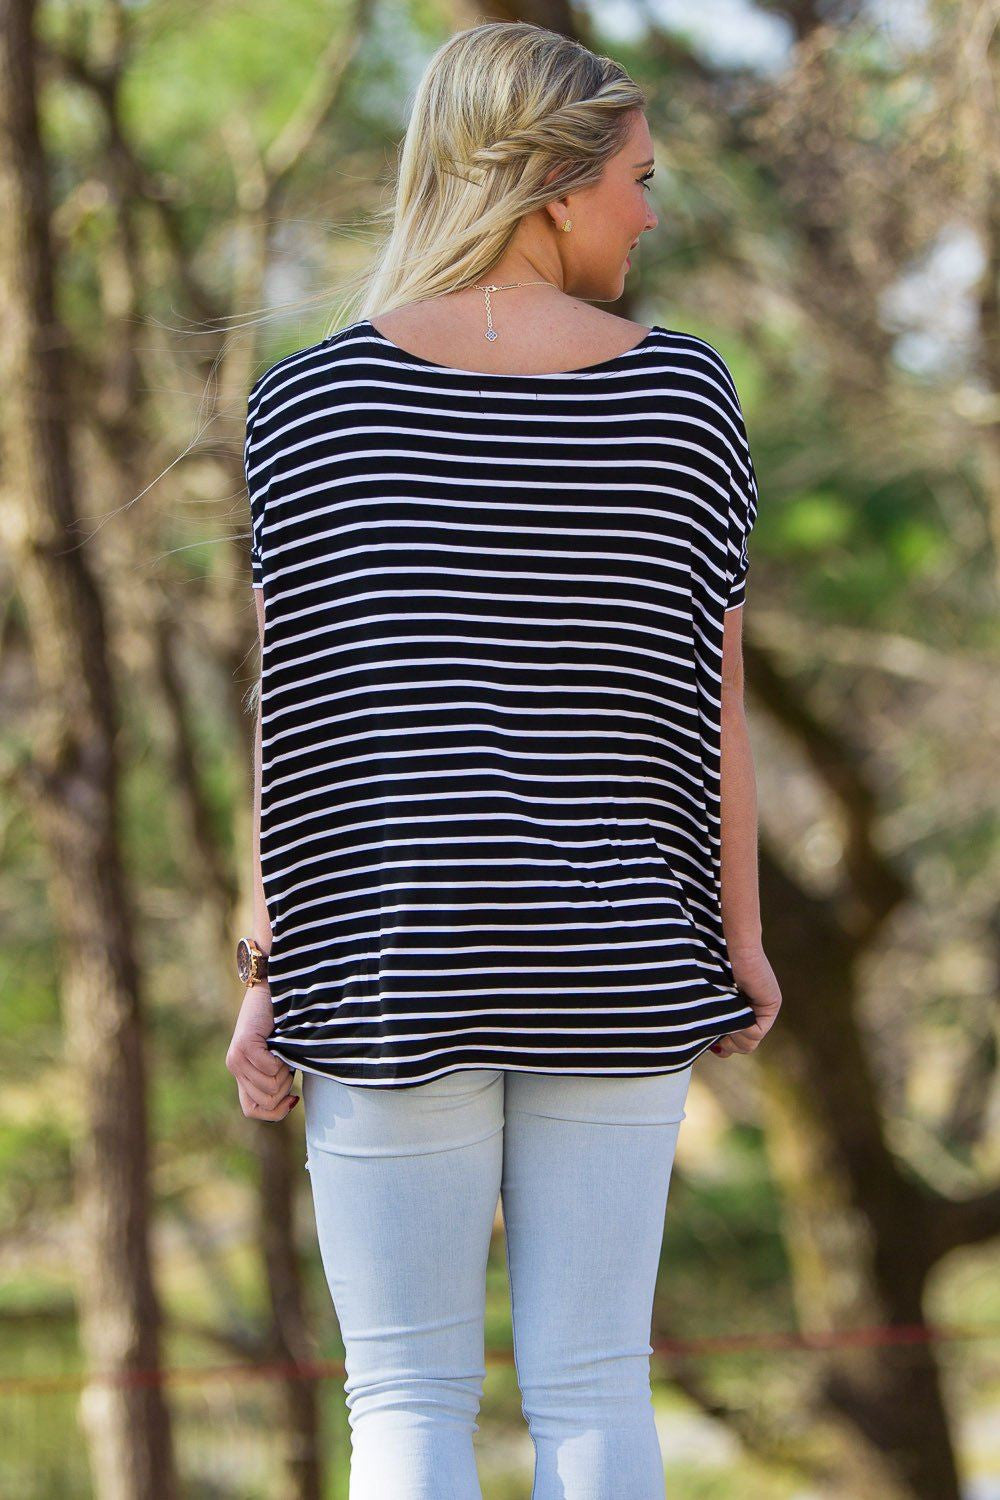 Short Sleeve Tiny Stripe Piko Top - Black/White - Piko Clothing - 2